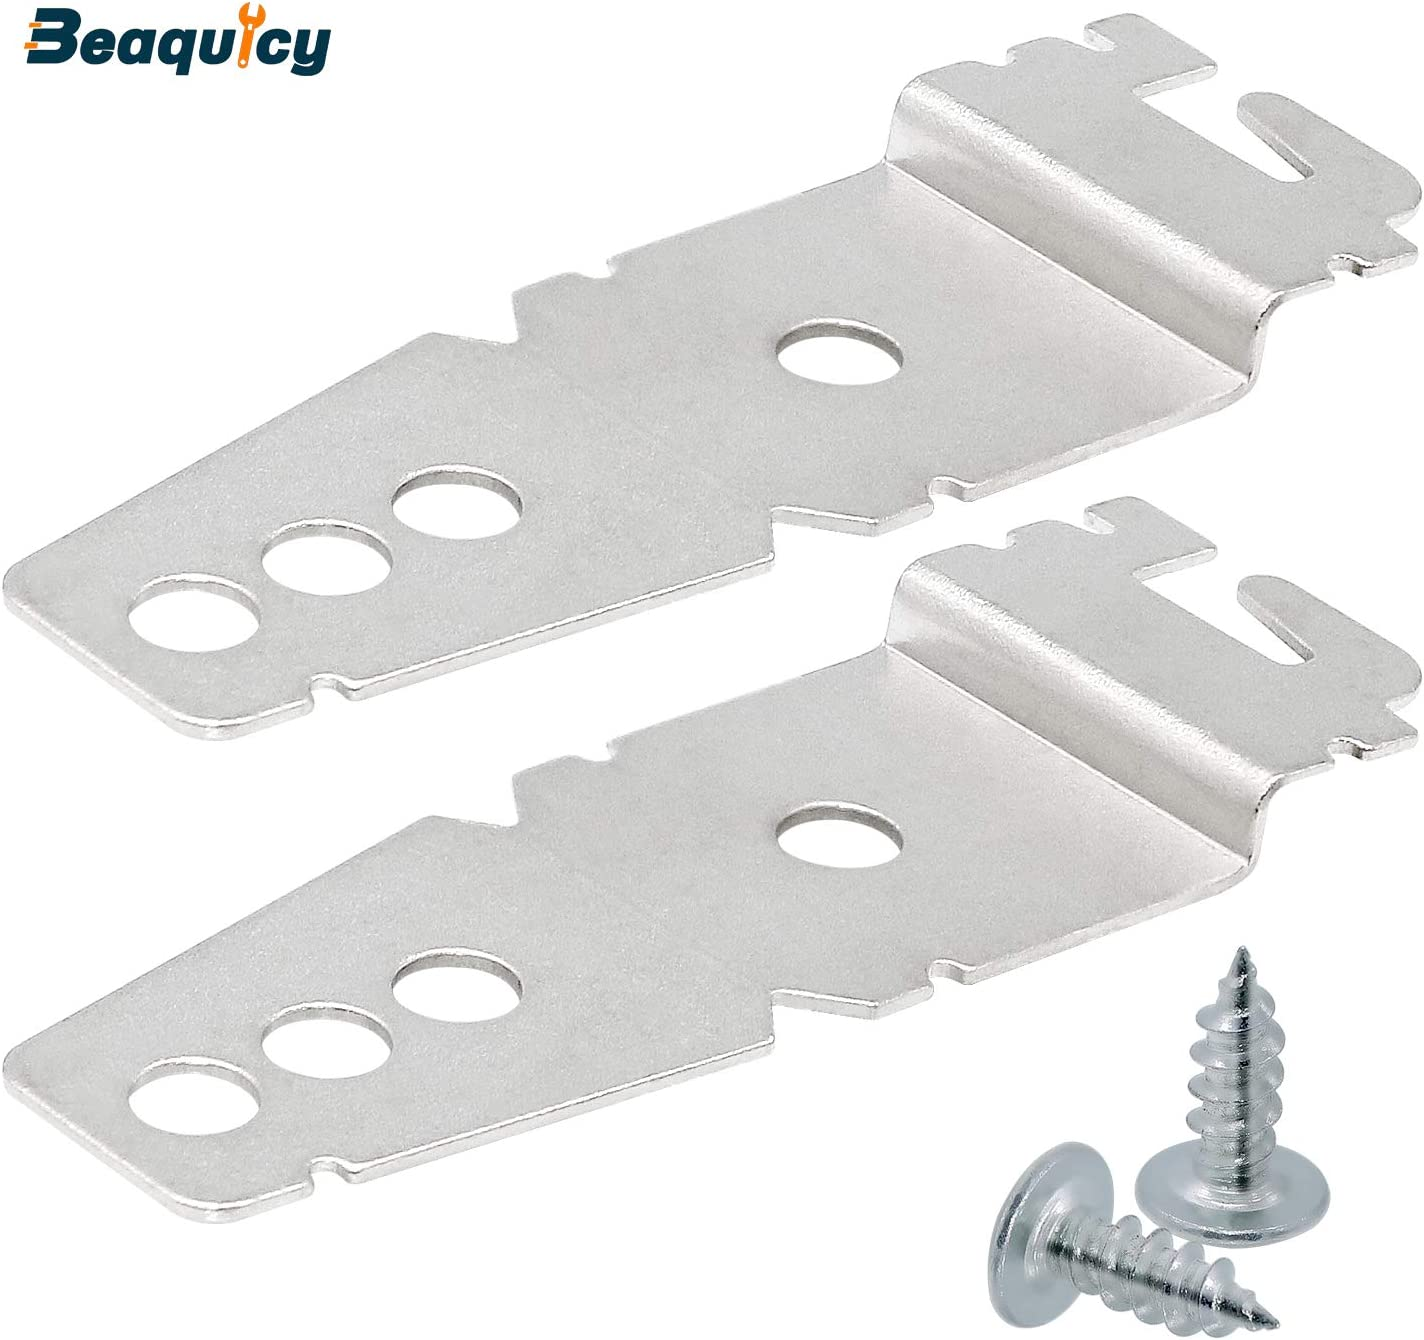 8269145 2-Pack Undercounter Dishwasher Mounting Bracket Replacement with Screws by Beaquicy - Replacement for Whirlpool Kenmore Dishwasher